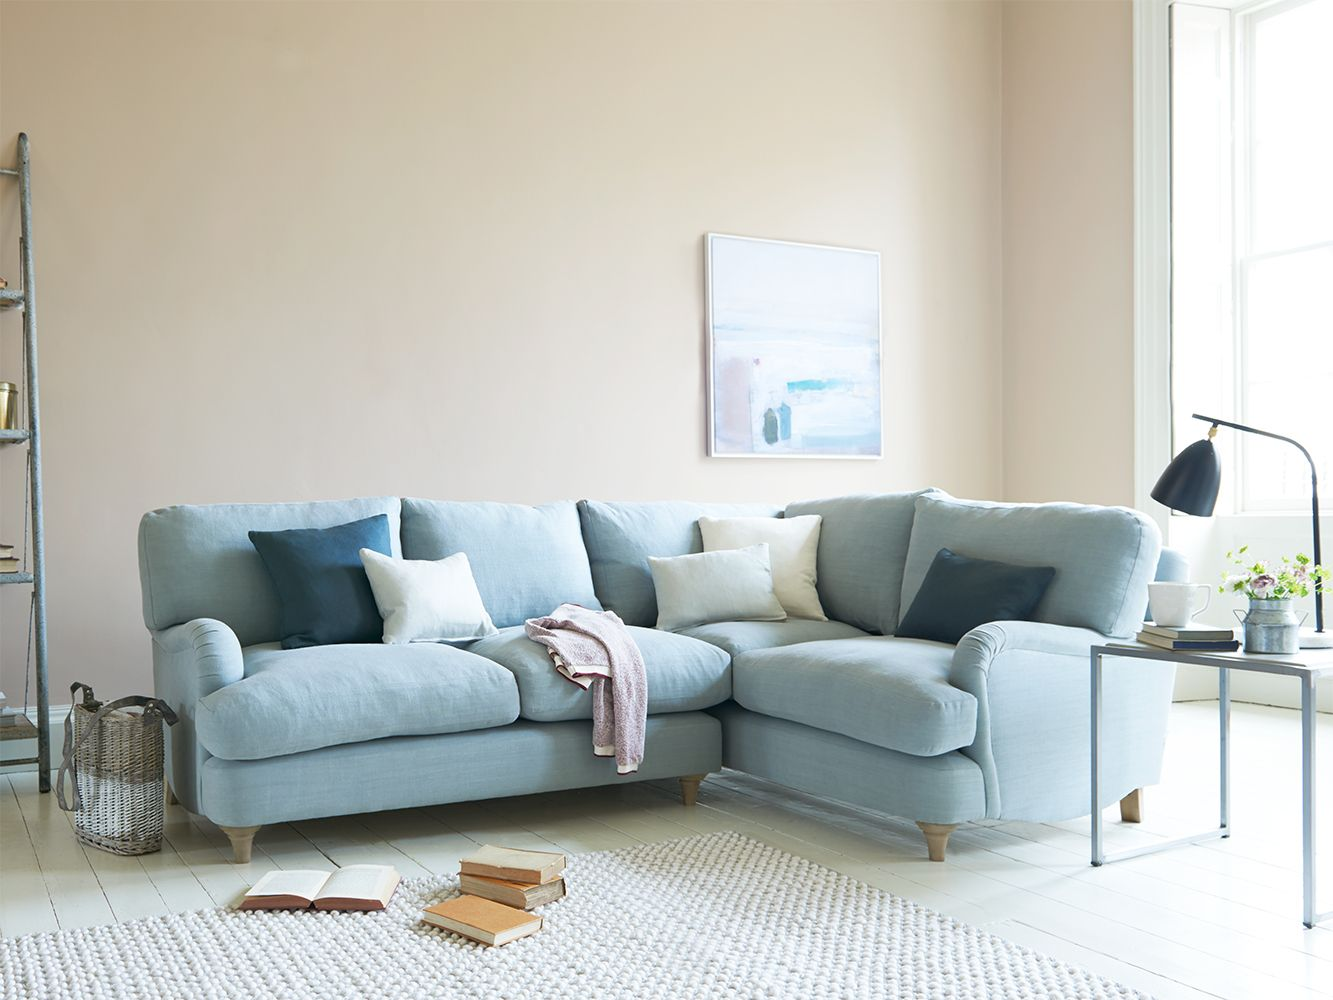 The Ultimate Sofa Buying Guide With Images Modular Corner Sofa Corner Sofa Sofa Buying Guide